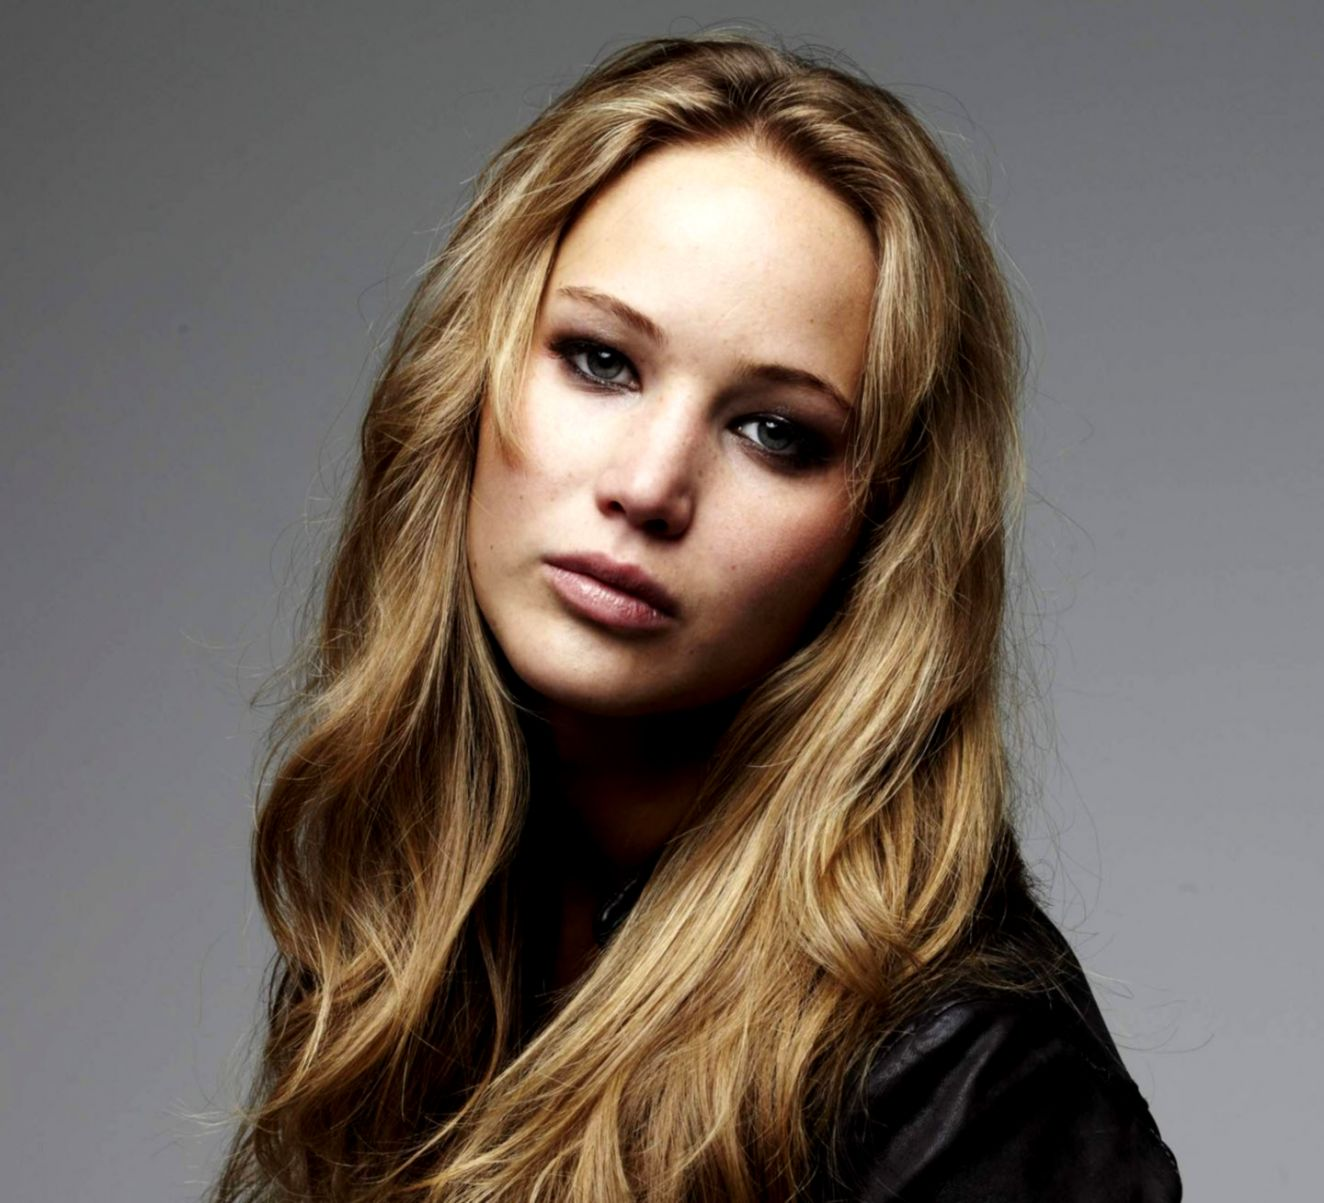 Jennifer Lawrence Wallpaper Free Desktop Wallpapers Mobile